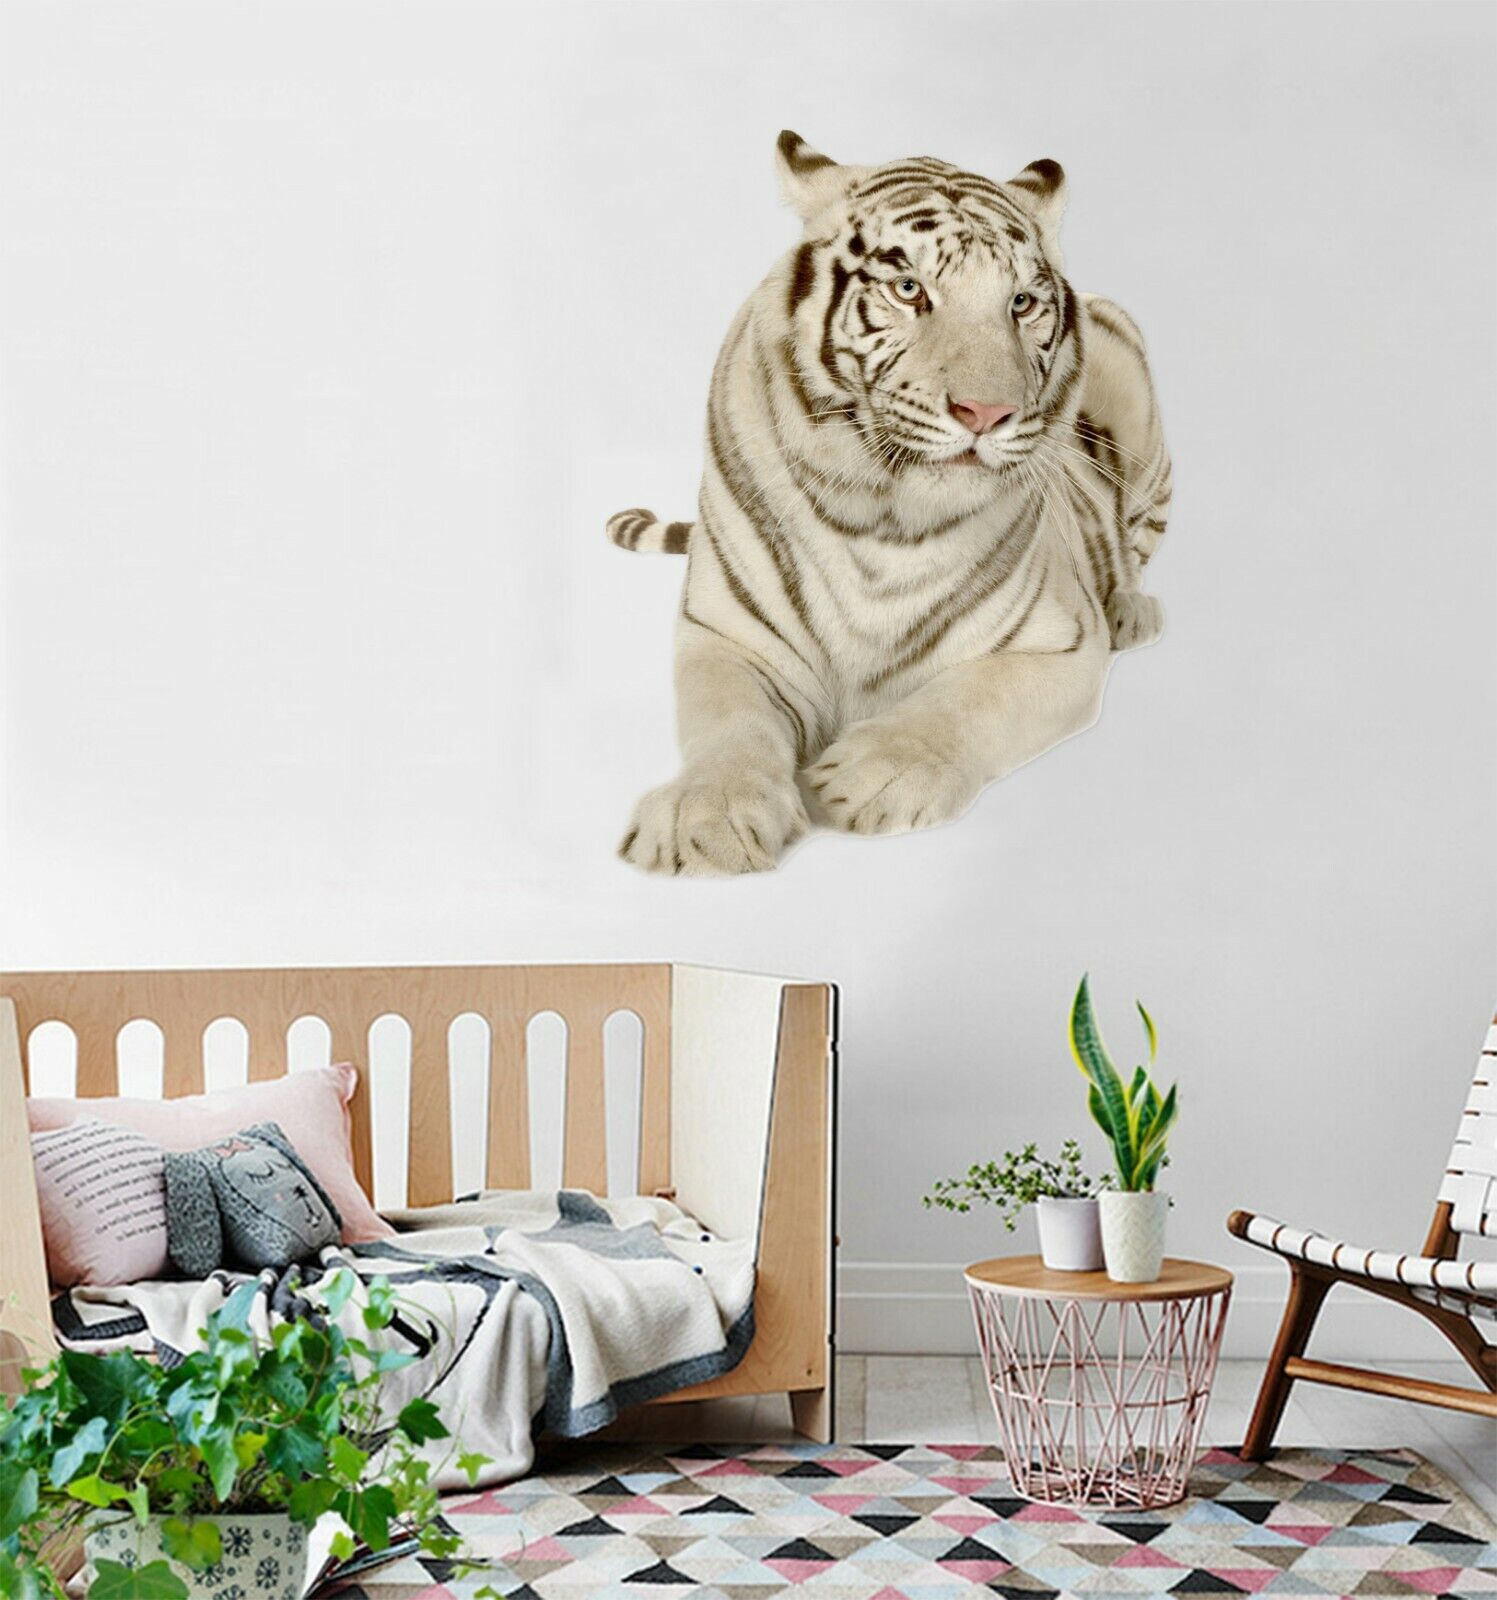 3D Tiger I142 Animal Wallpaper Mural Poster Wall Stickers Decal Angelia